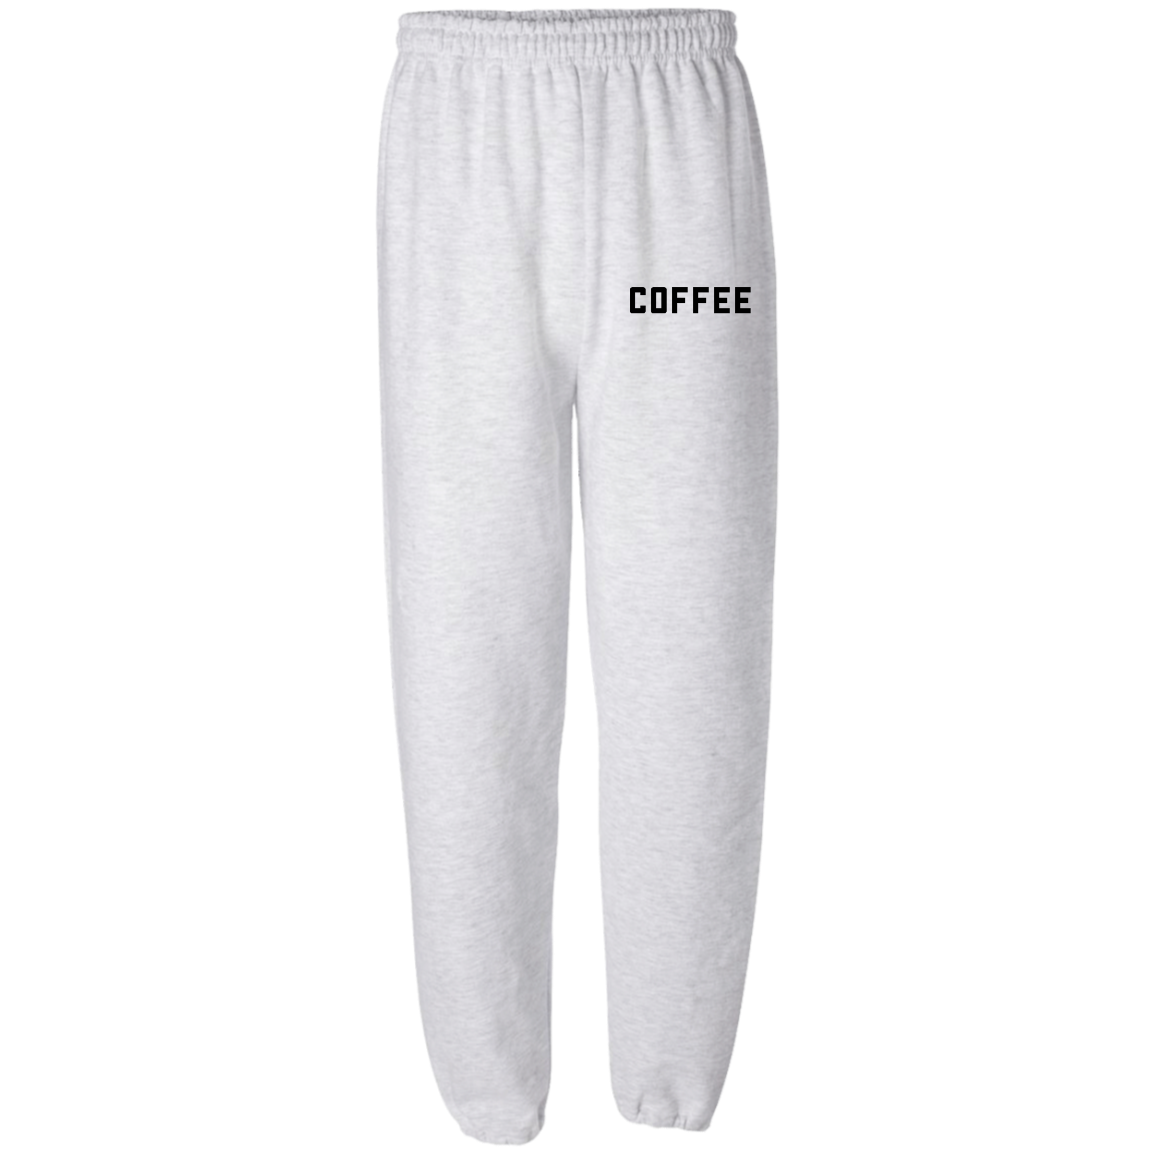 COFFEE Sweats